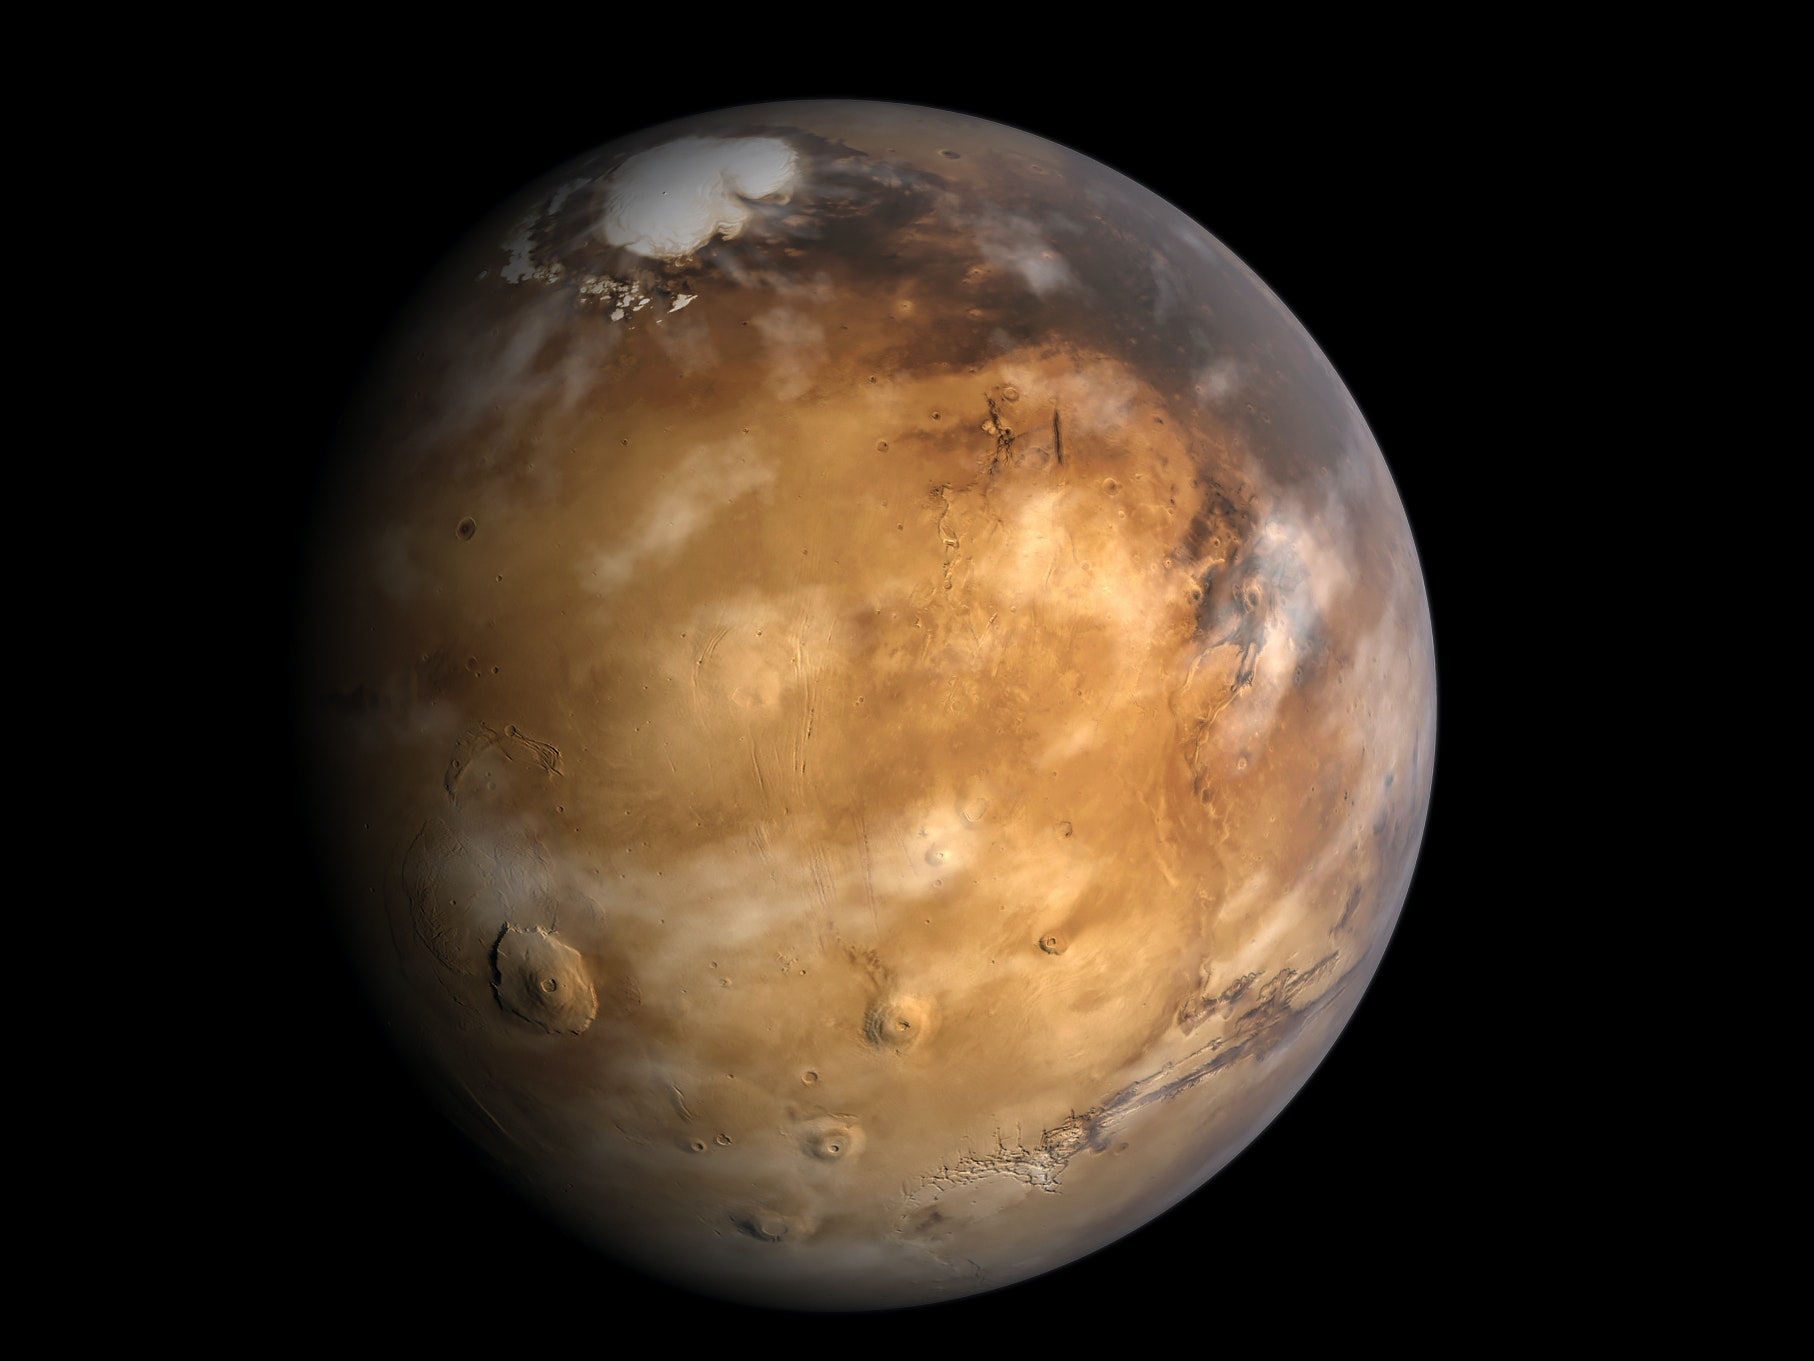 nasa mars missions essay example Mars sample return is a proposed mission to return samples from the surface of mars to earth the mission would use robotic systems and a mars ascent rocket to collect and send samples of.